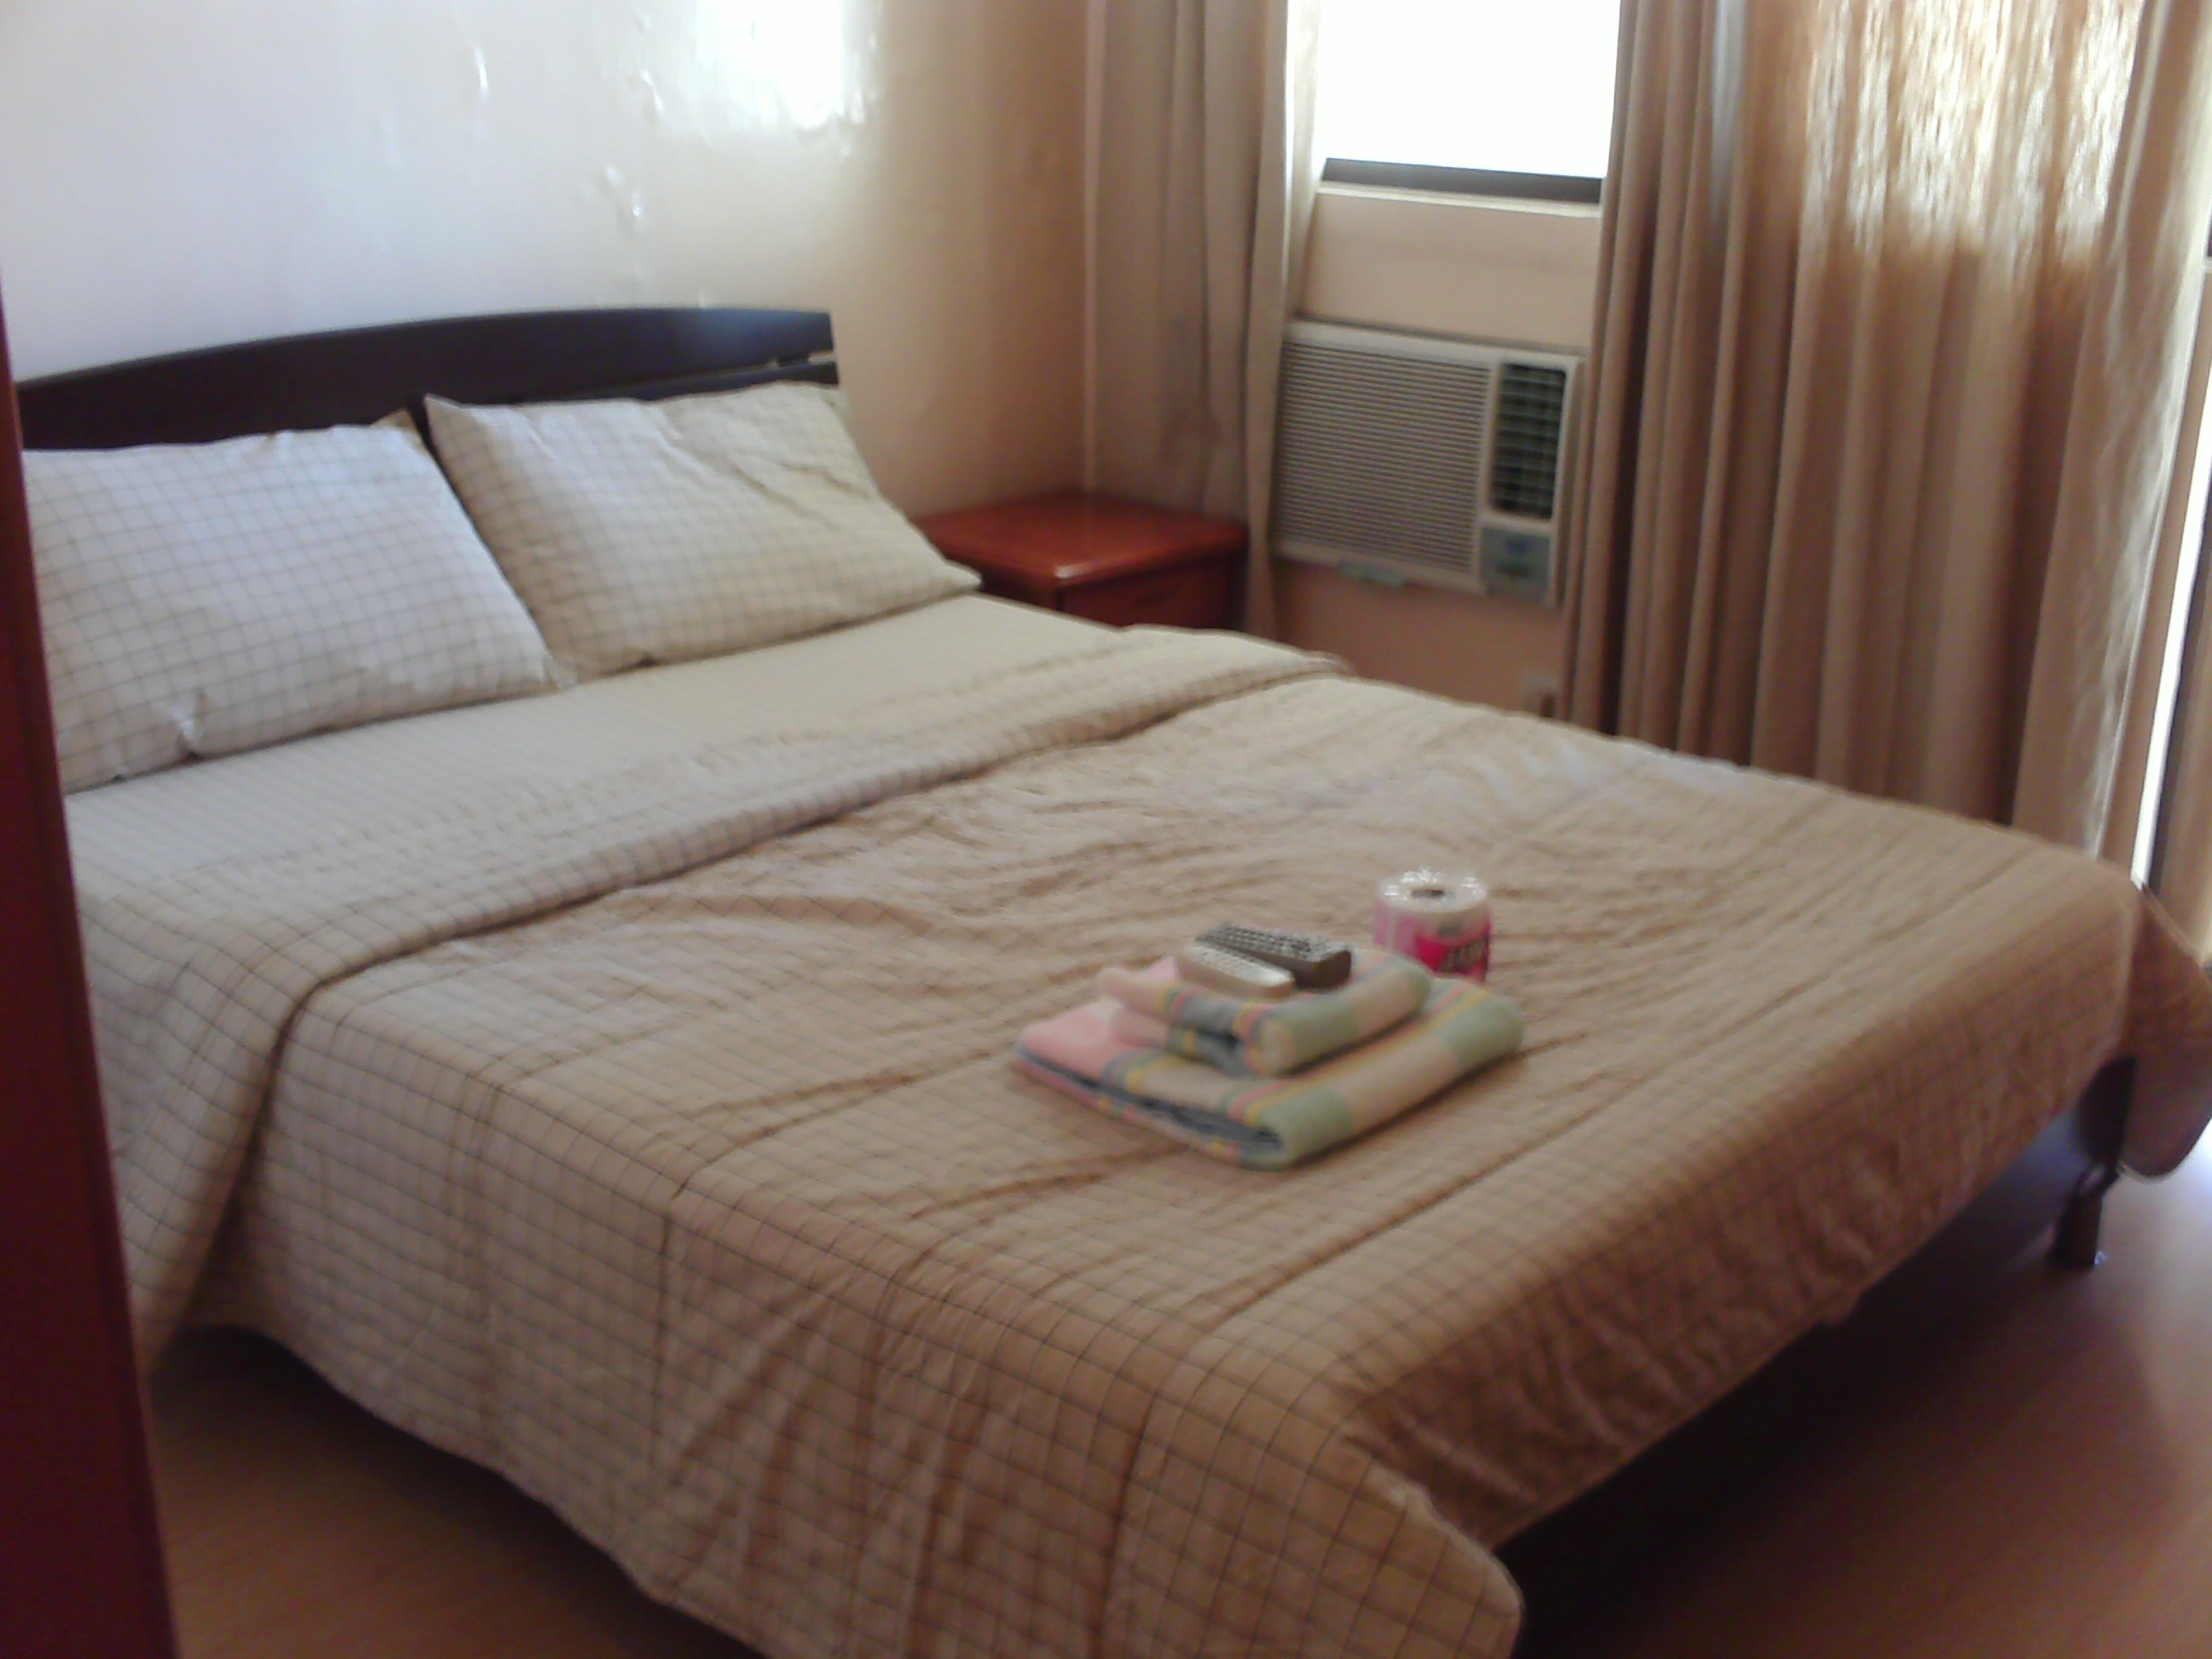 FOR RENT / LEASE: MAKATI 2,500/DAY, 16K UP/MONTH STUDIO/1BR GREENBELT AREA